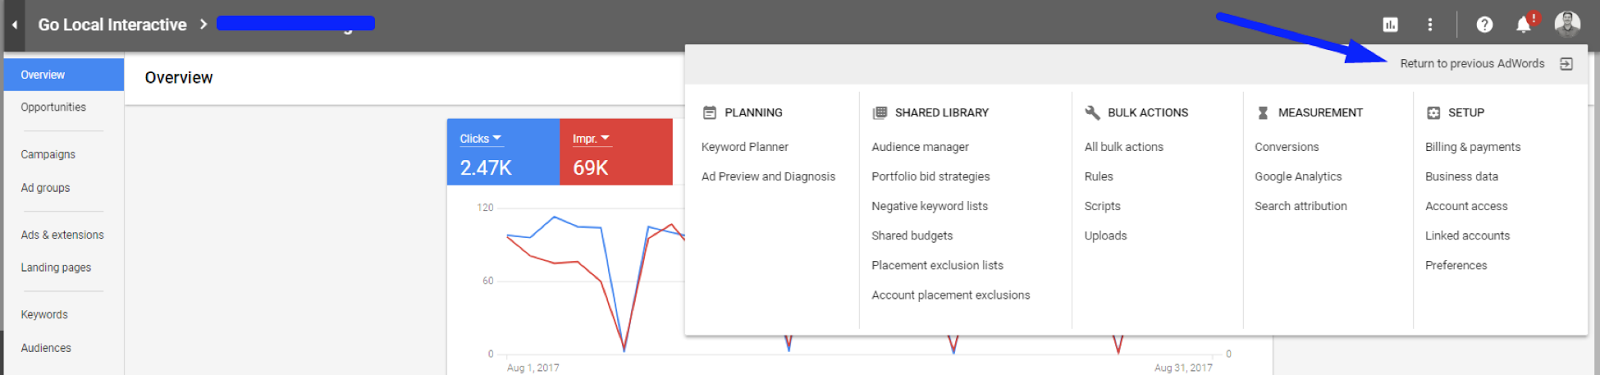 Google AdWords dashboard showing how to return to the old UI